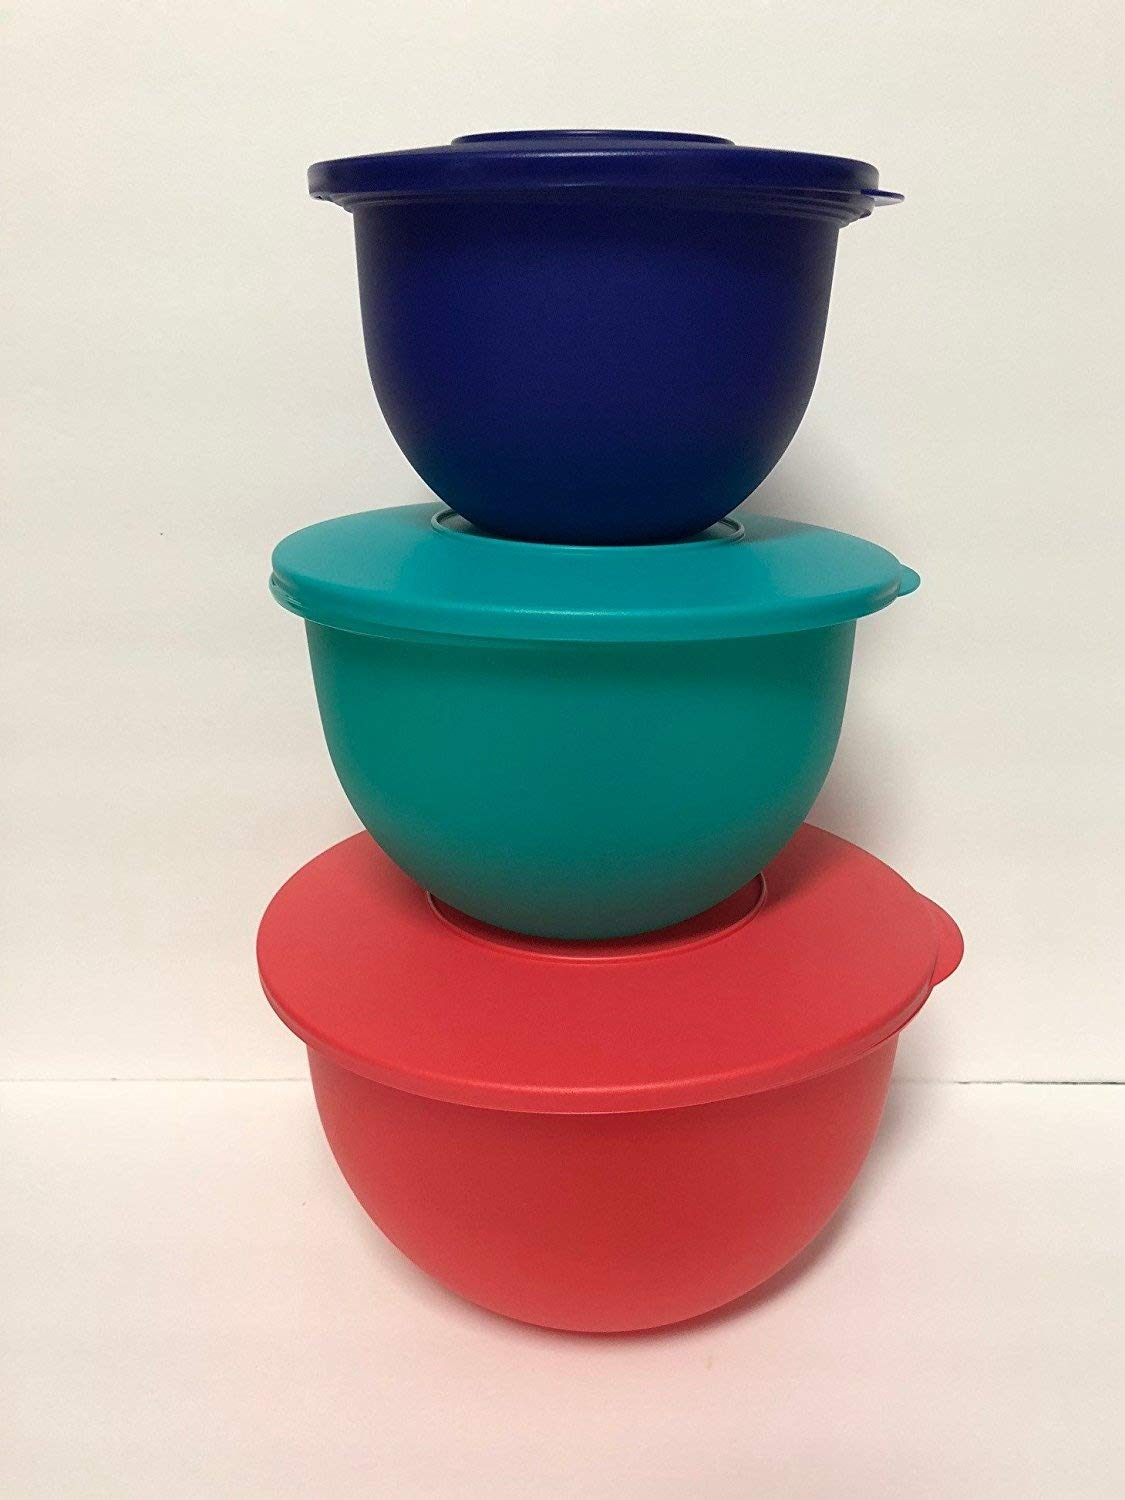 Tupperware Impression Classic Bowl Set of 3 Multi Colors 2018 Blue, Green, Red